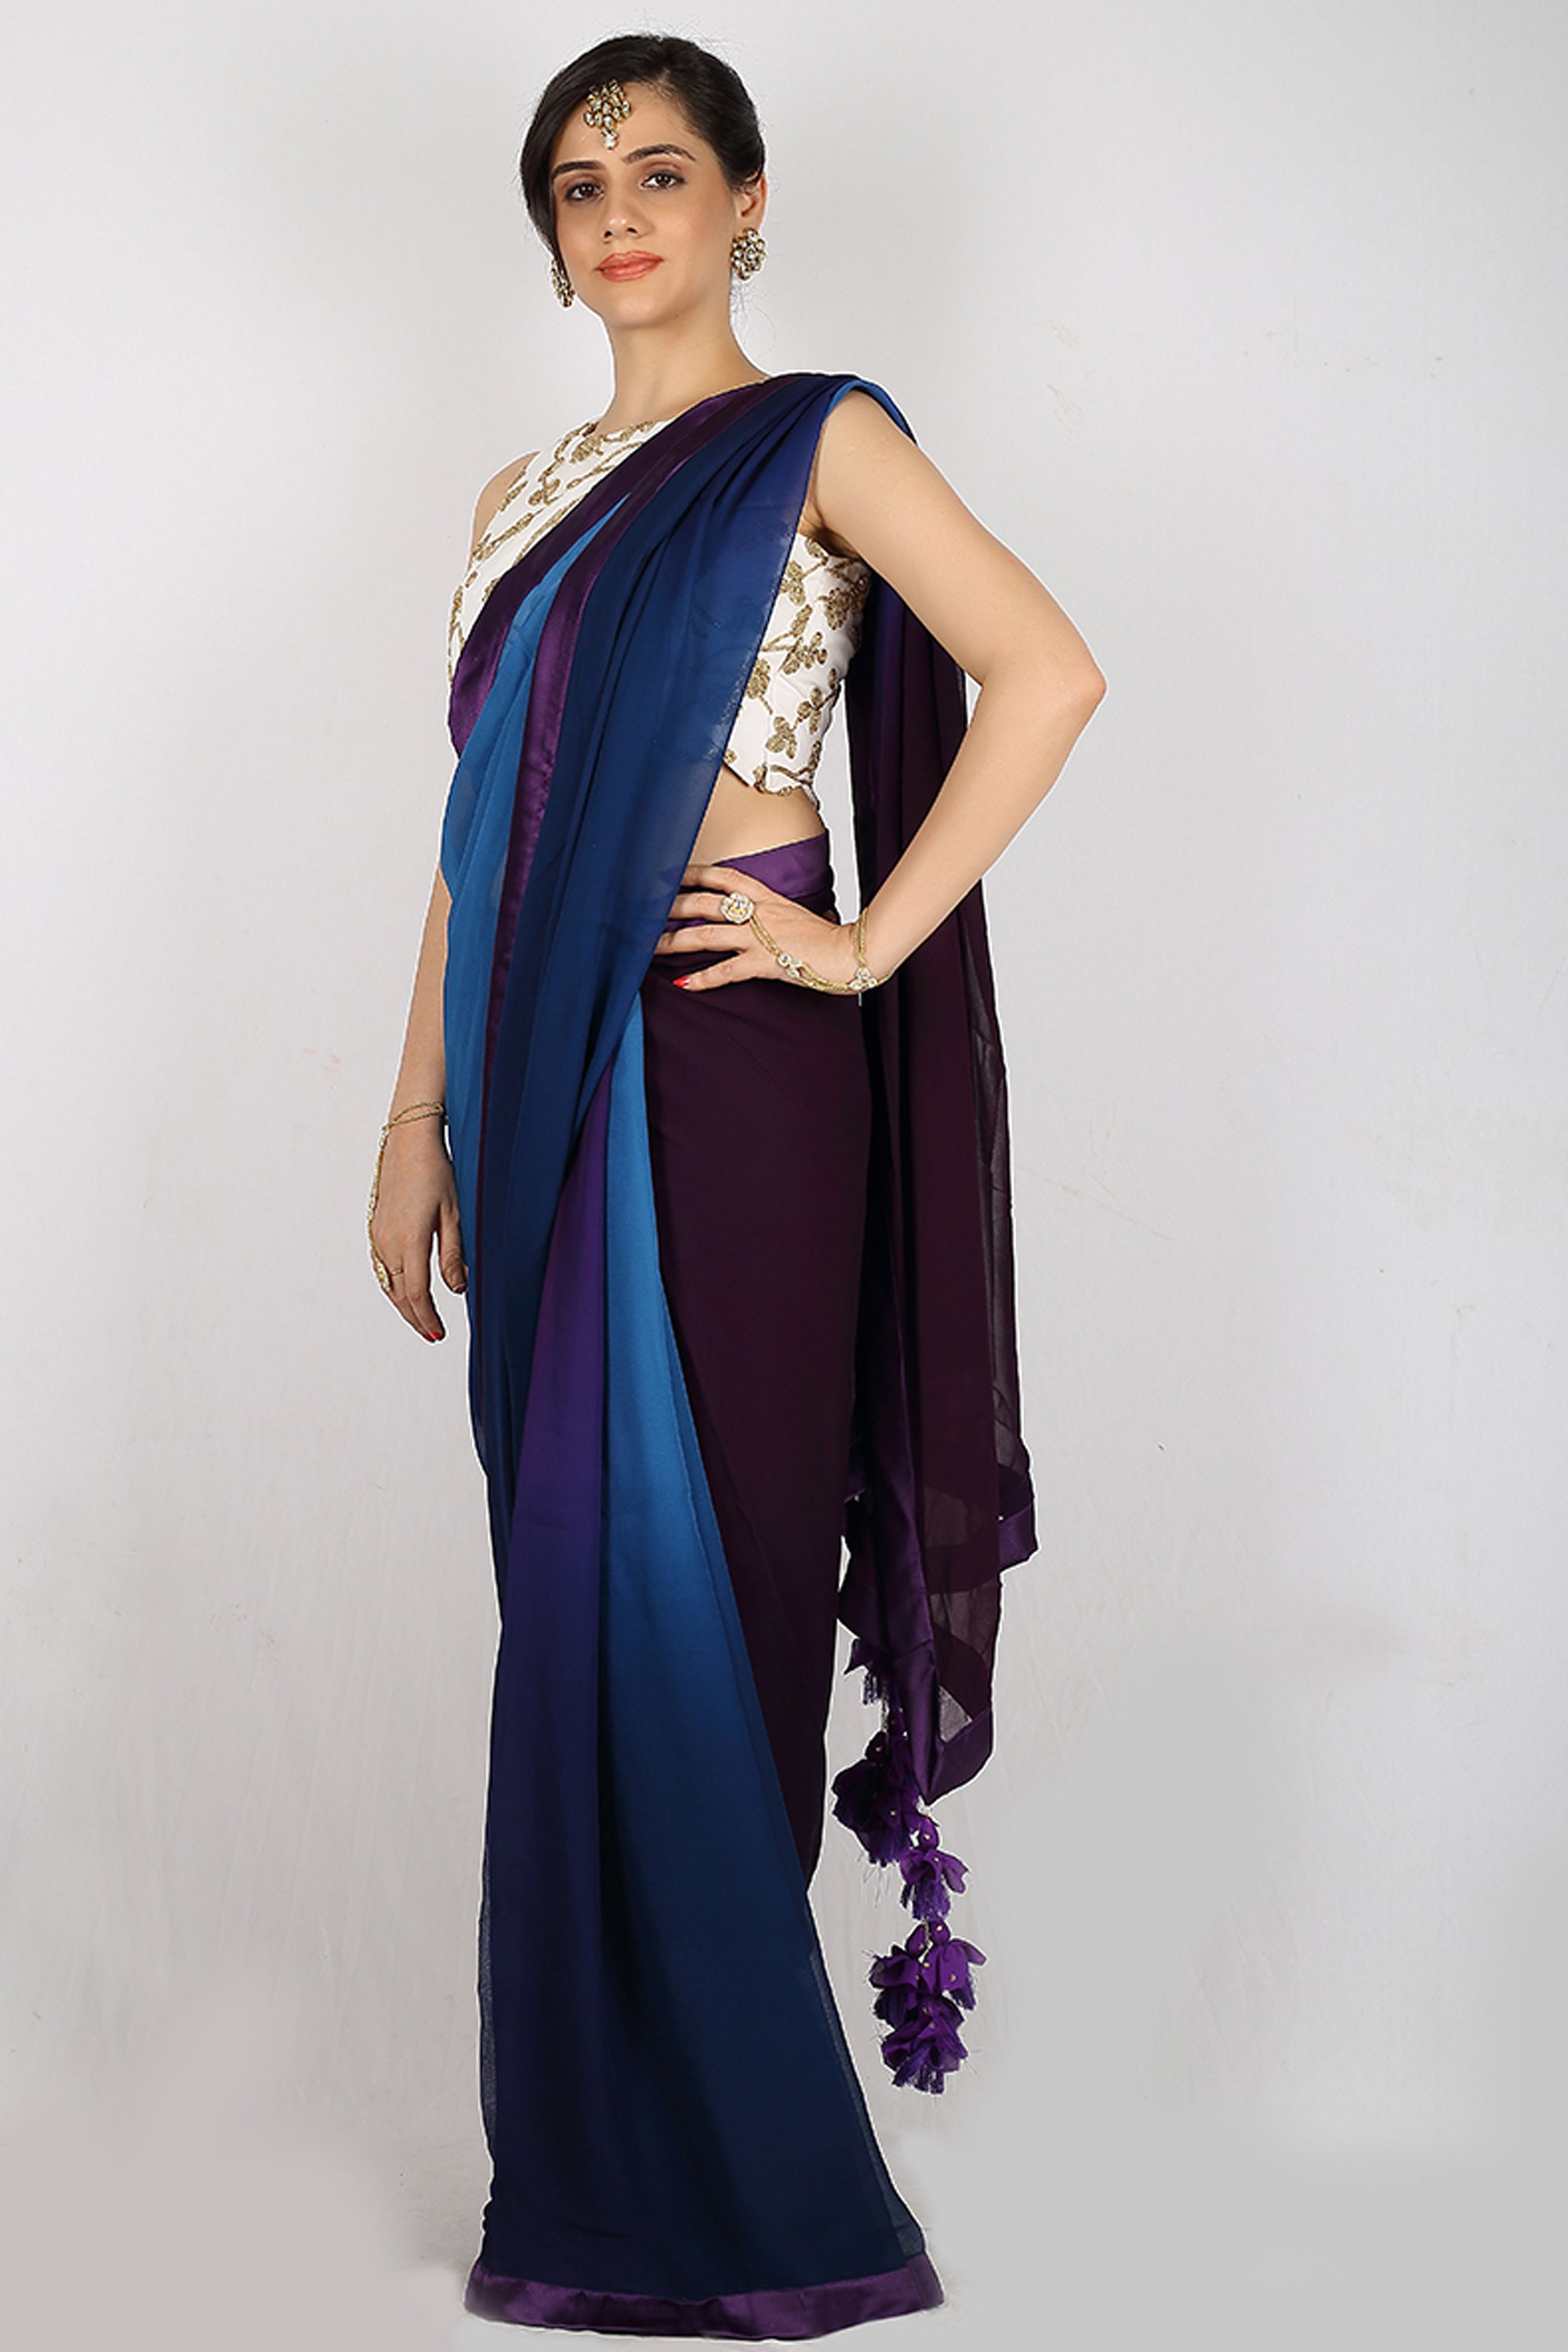 The Night Blue Ombré Saree